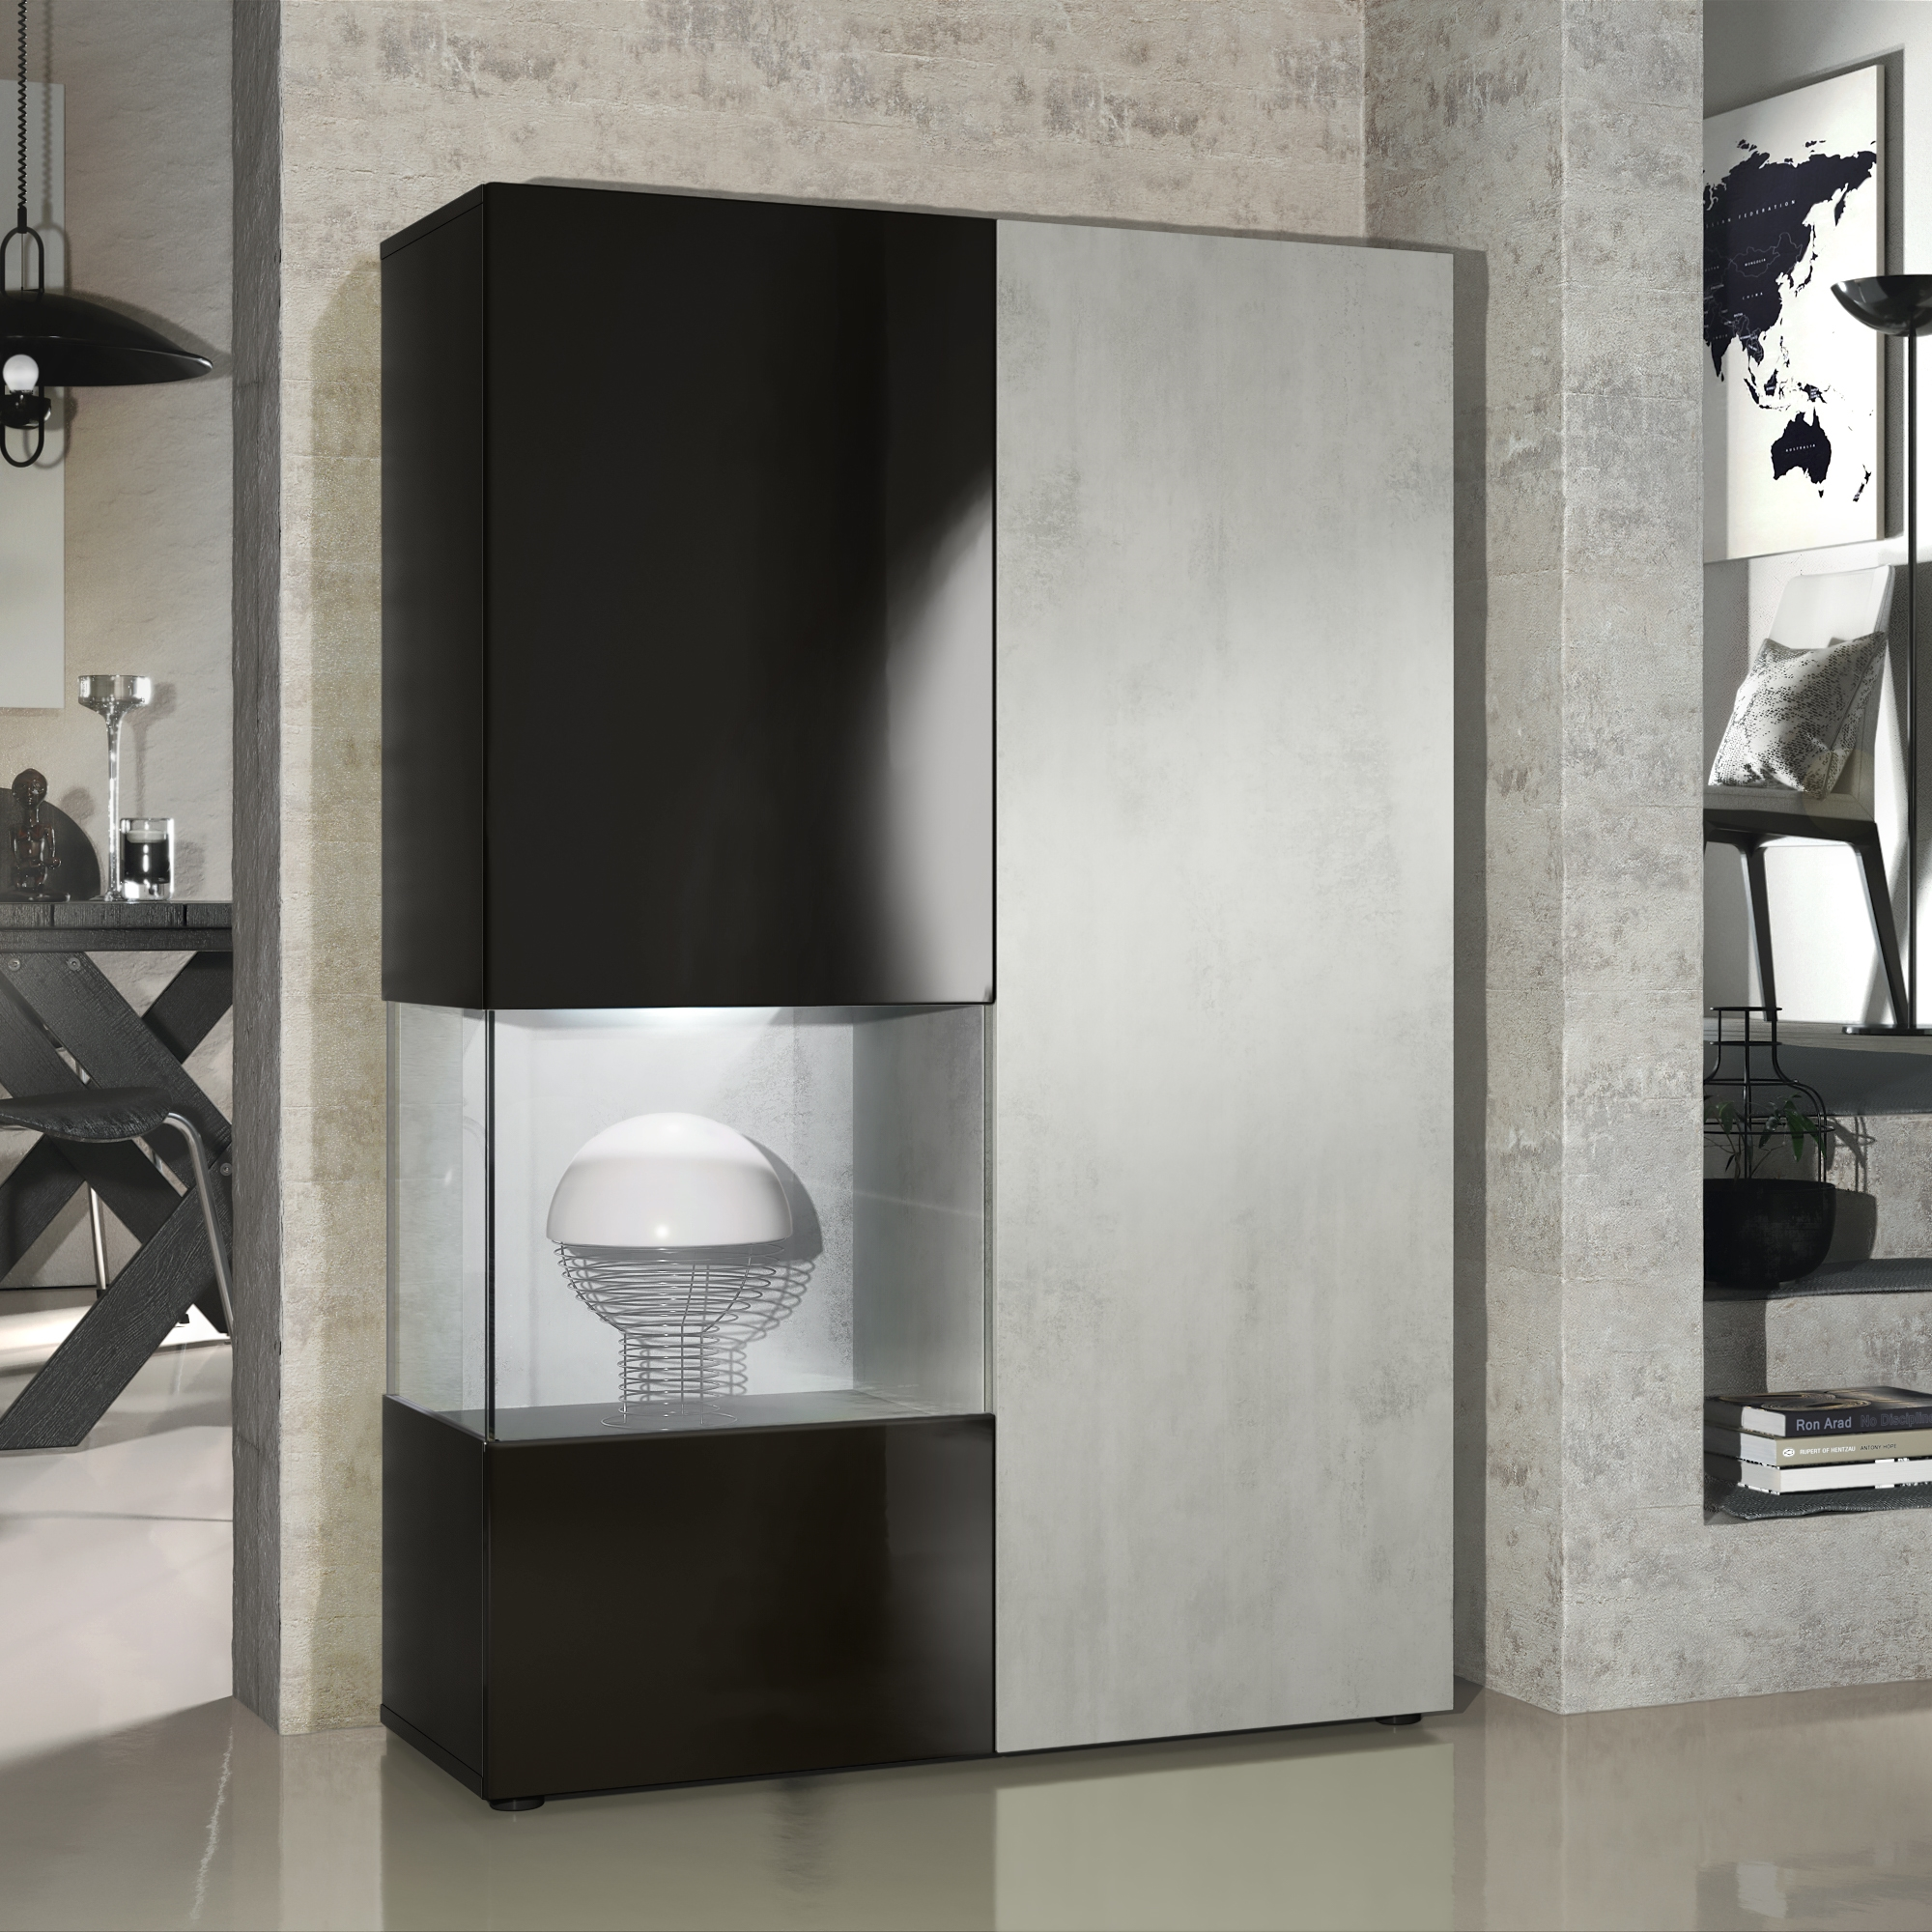 standvitrine highboard hochschrank glas morena schwarz hochglanz naturdekor ebay. Black Bedroom Furniture Sets. Home Design Ideas